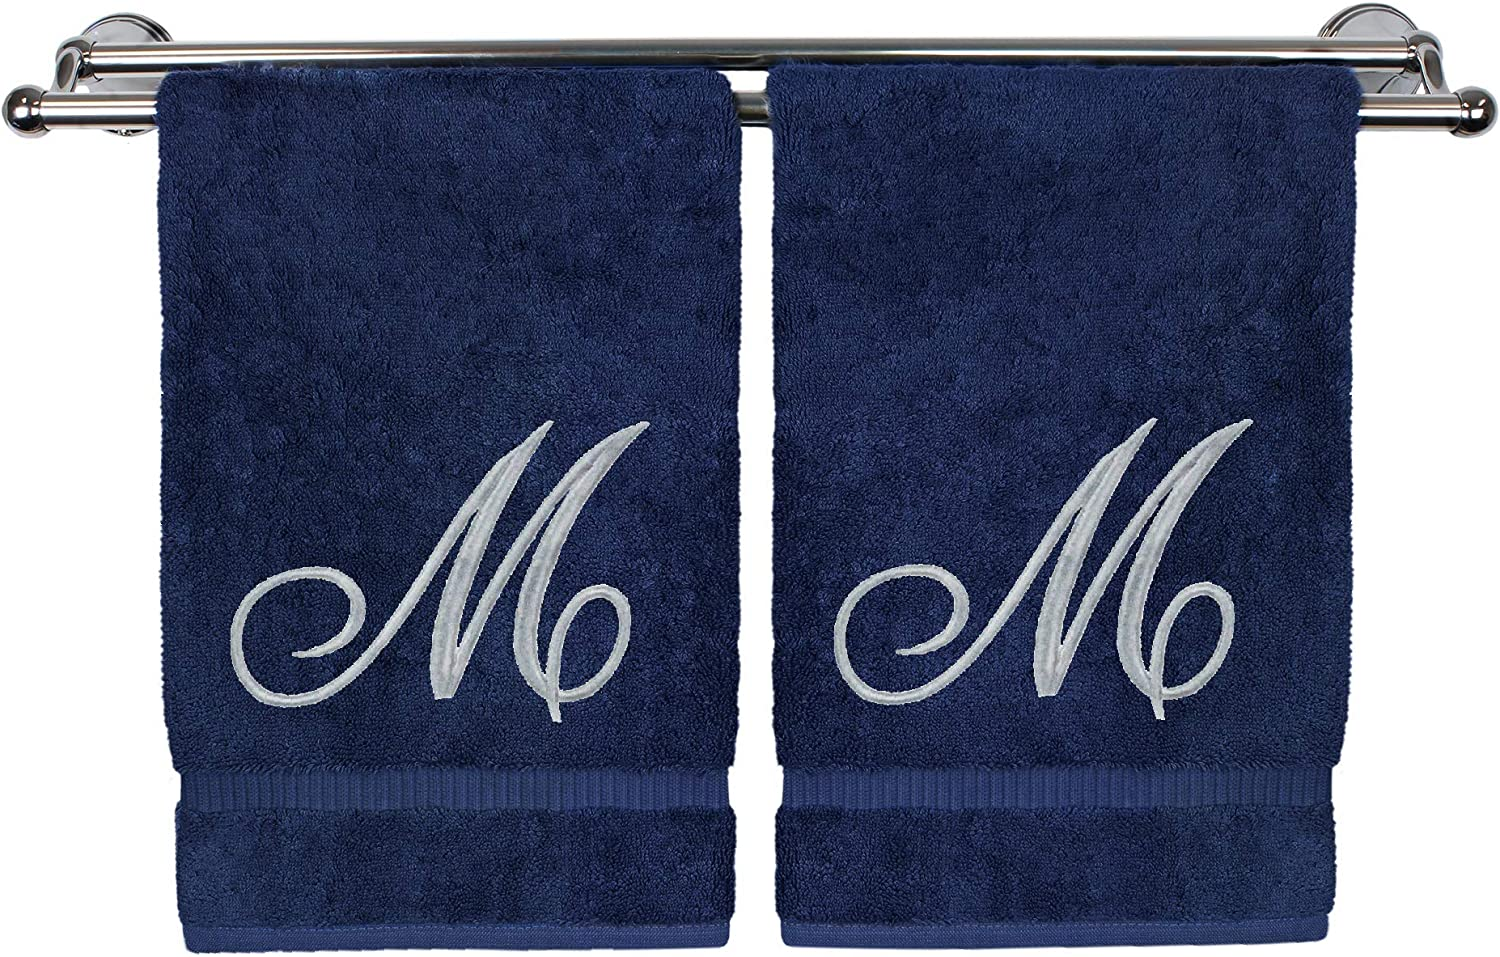 BC BARE COTTON Monogrammed Hand Towel